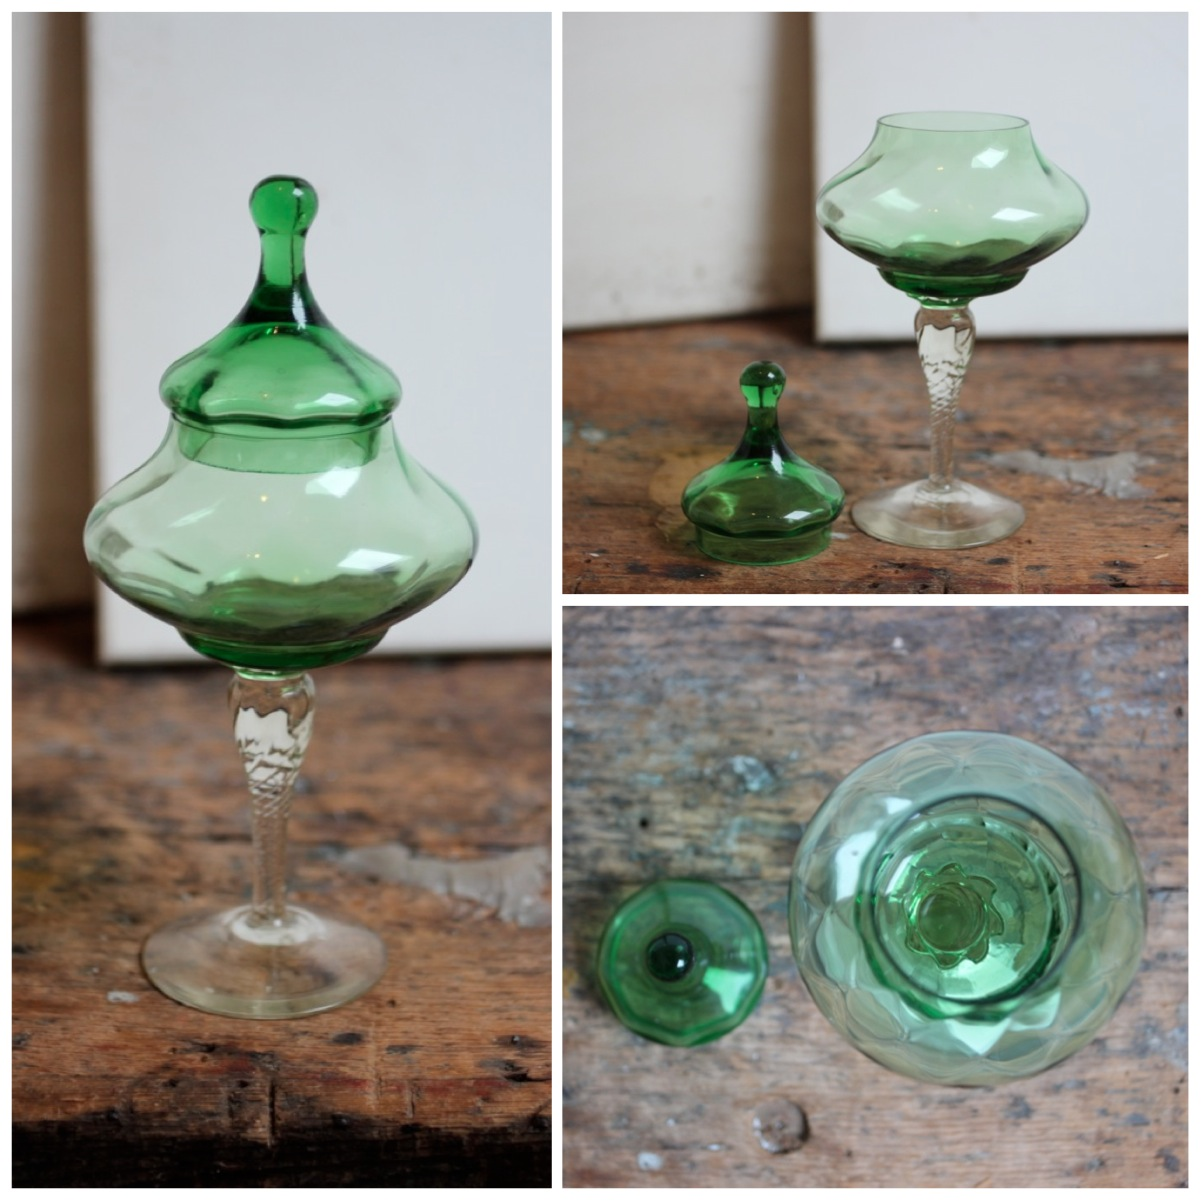 Friday's featured item – Vintage 1930s Glass Sweet Jar. Green and Clear Glass.